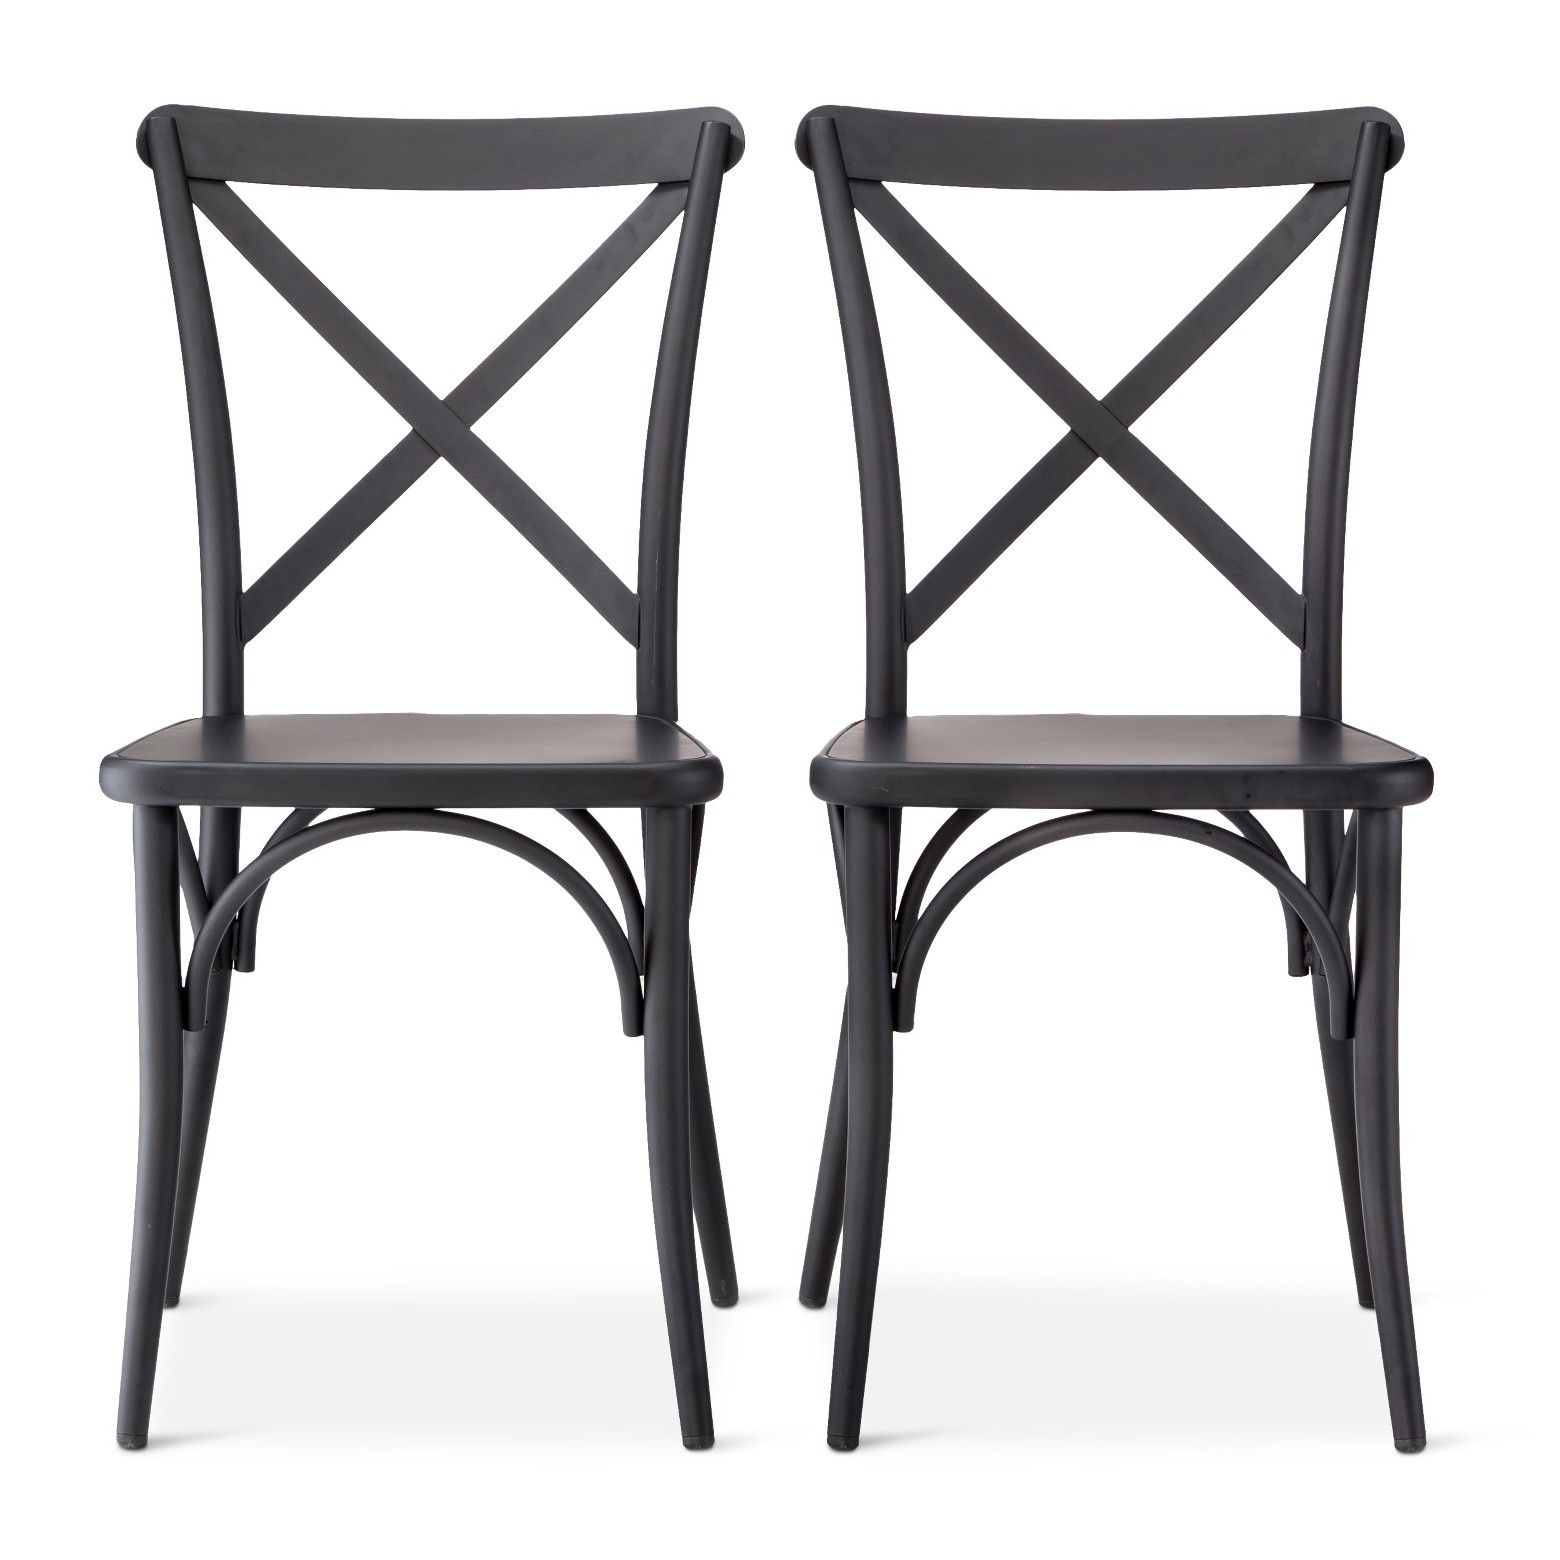 Bistro Table And Chairs Target: Complete Your Bistro With These French Metal Bistro Chairs